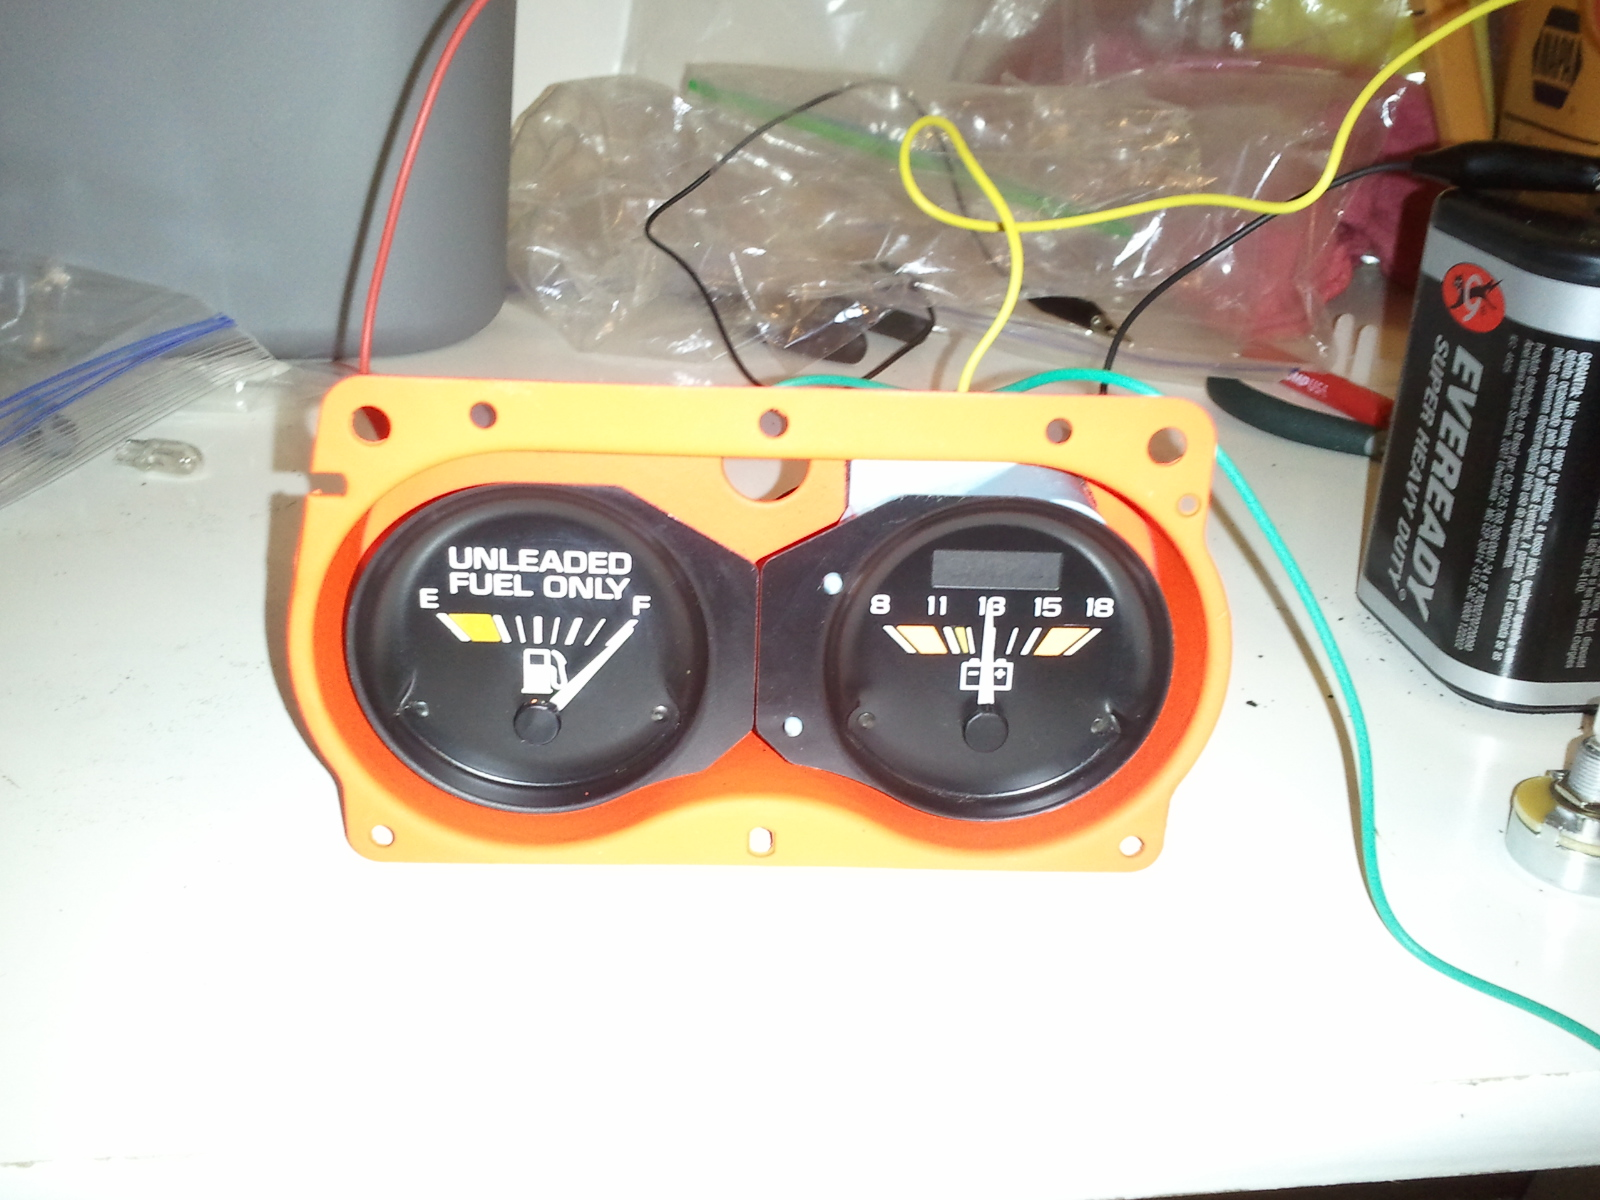 Bench Testing Fuel Gas Gauge Mods And Rods Tv Archive Circuit With Voltmeter Real Battery Variable Resistor We